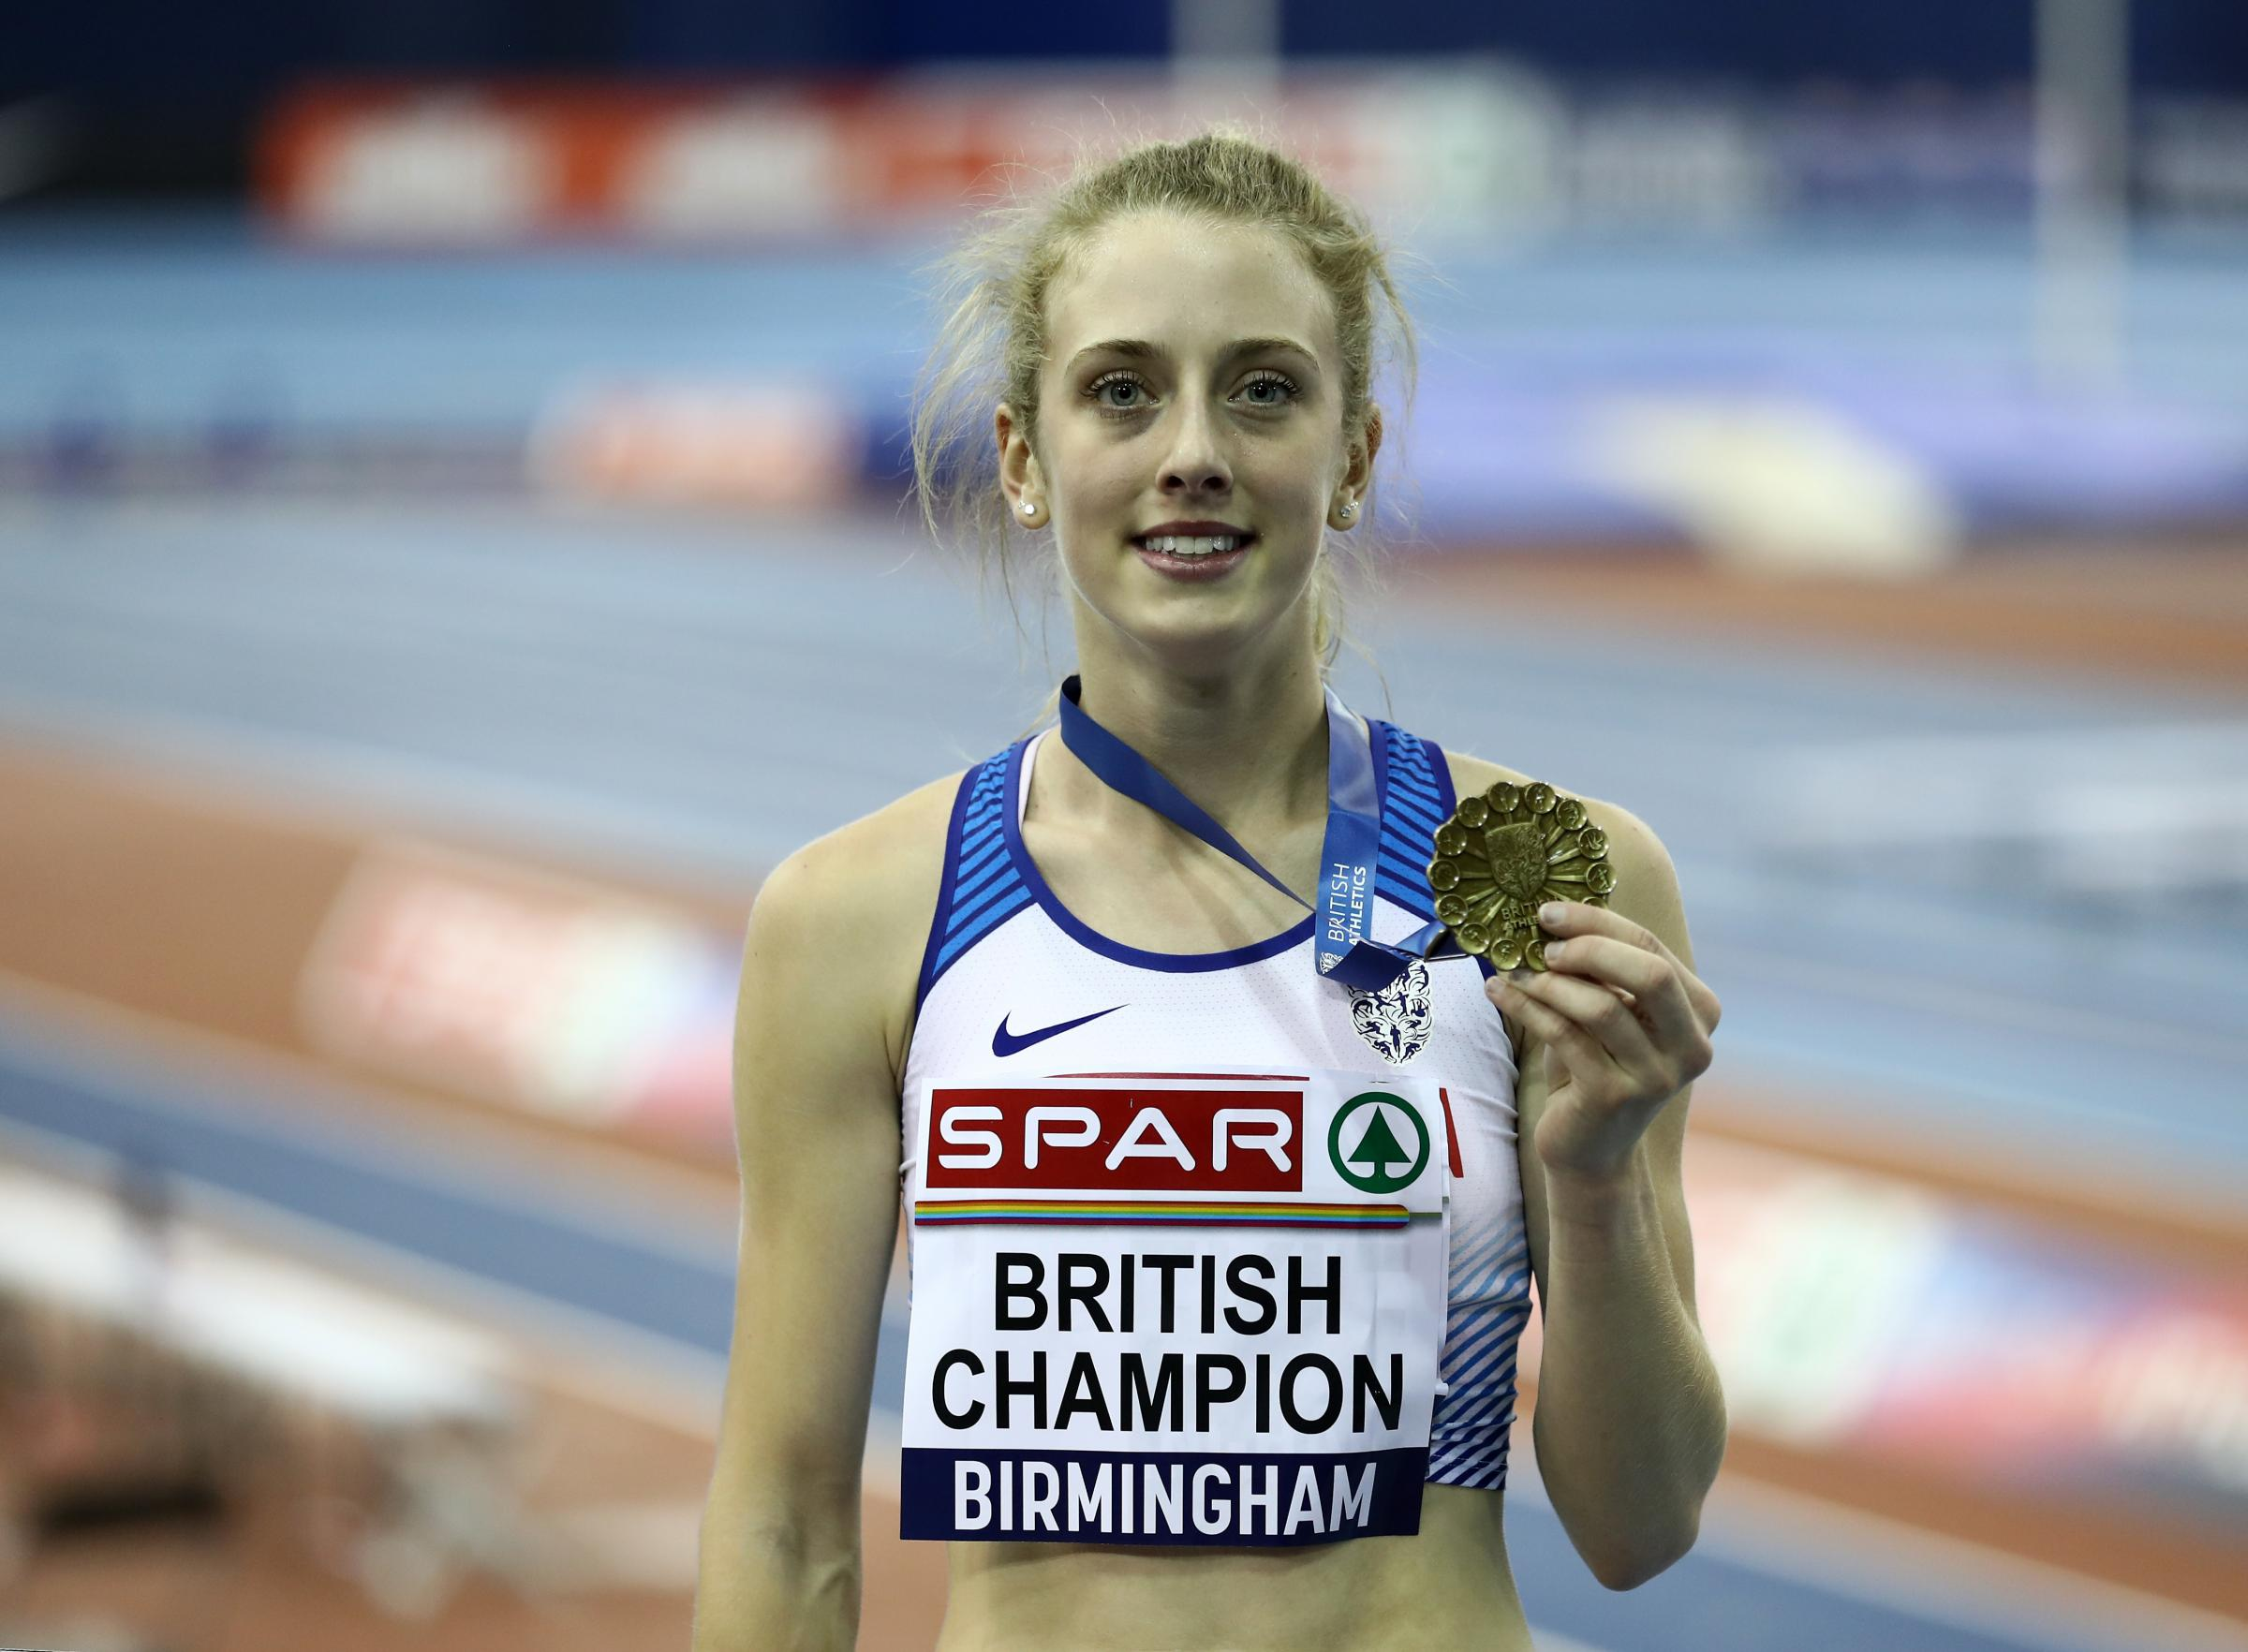 BIRMINGHAM, ENGLAND - FEBRUARY 10: Jemma Reekie poses after winning the womens 1500m final during Day Two of the SPAR British Athletics Indoor Championships at Arena Birmingham on February 10, 2019 in Birmingham, England. (Photo by Bryn Lennon/Getty Image